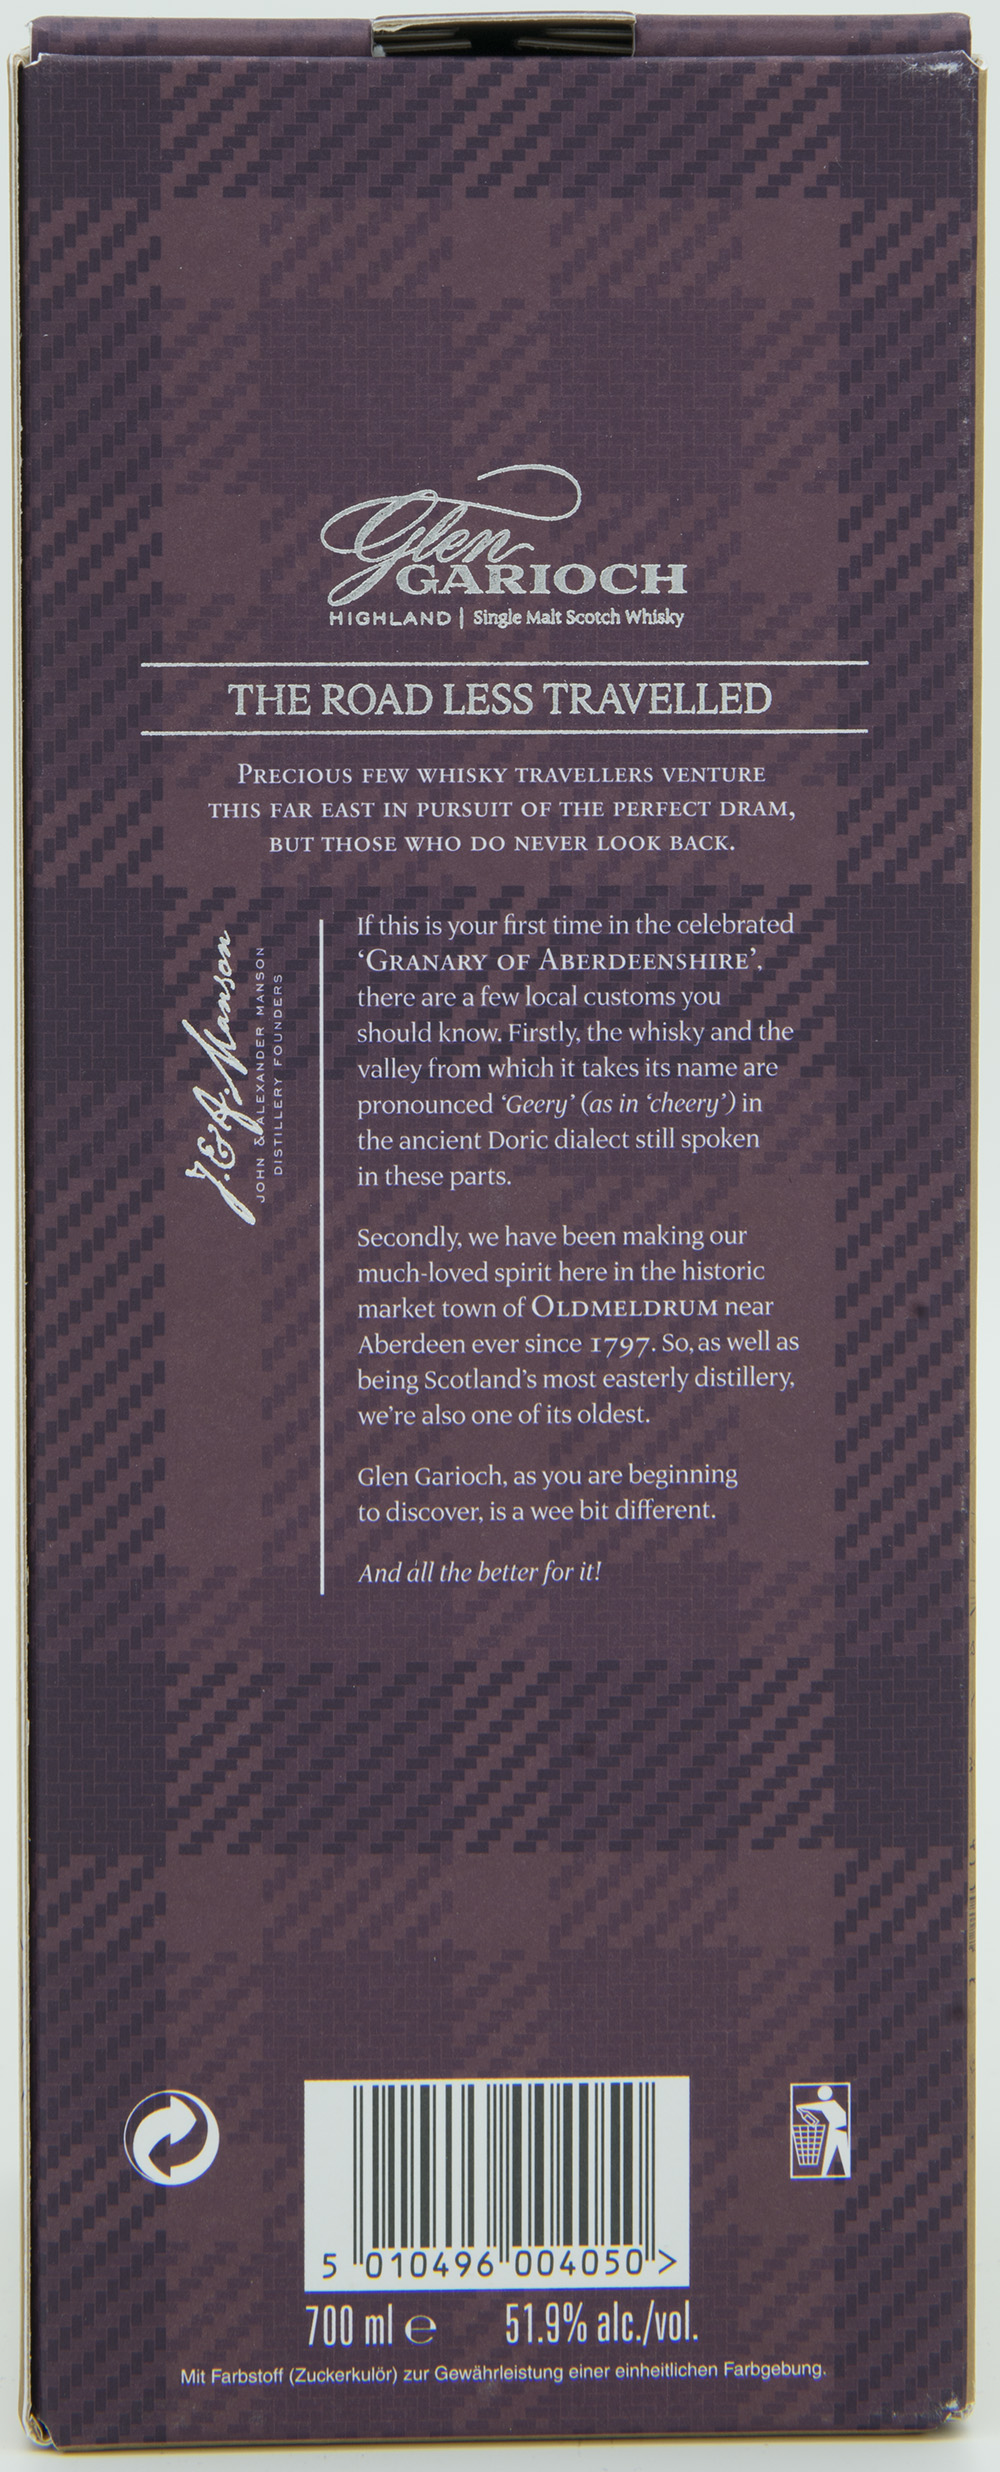 Billede: DSC_6556 Glen Garioch 15 - The Renaissance 1st chapter - Box back.jpg